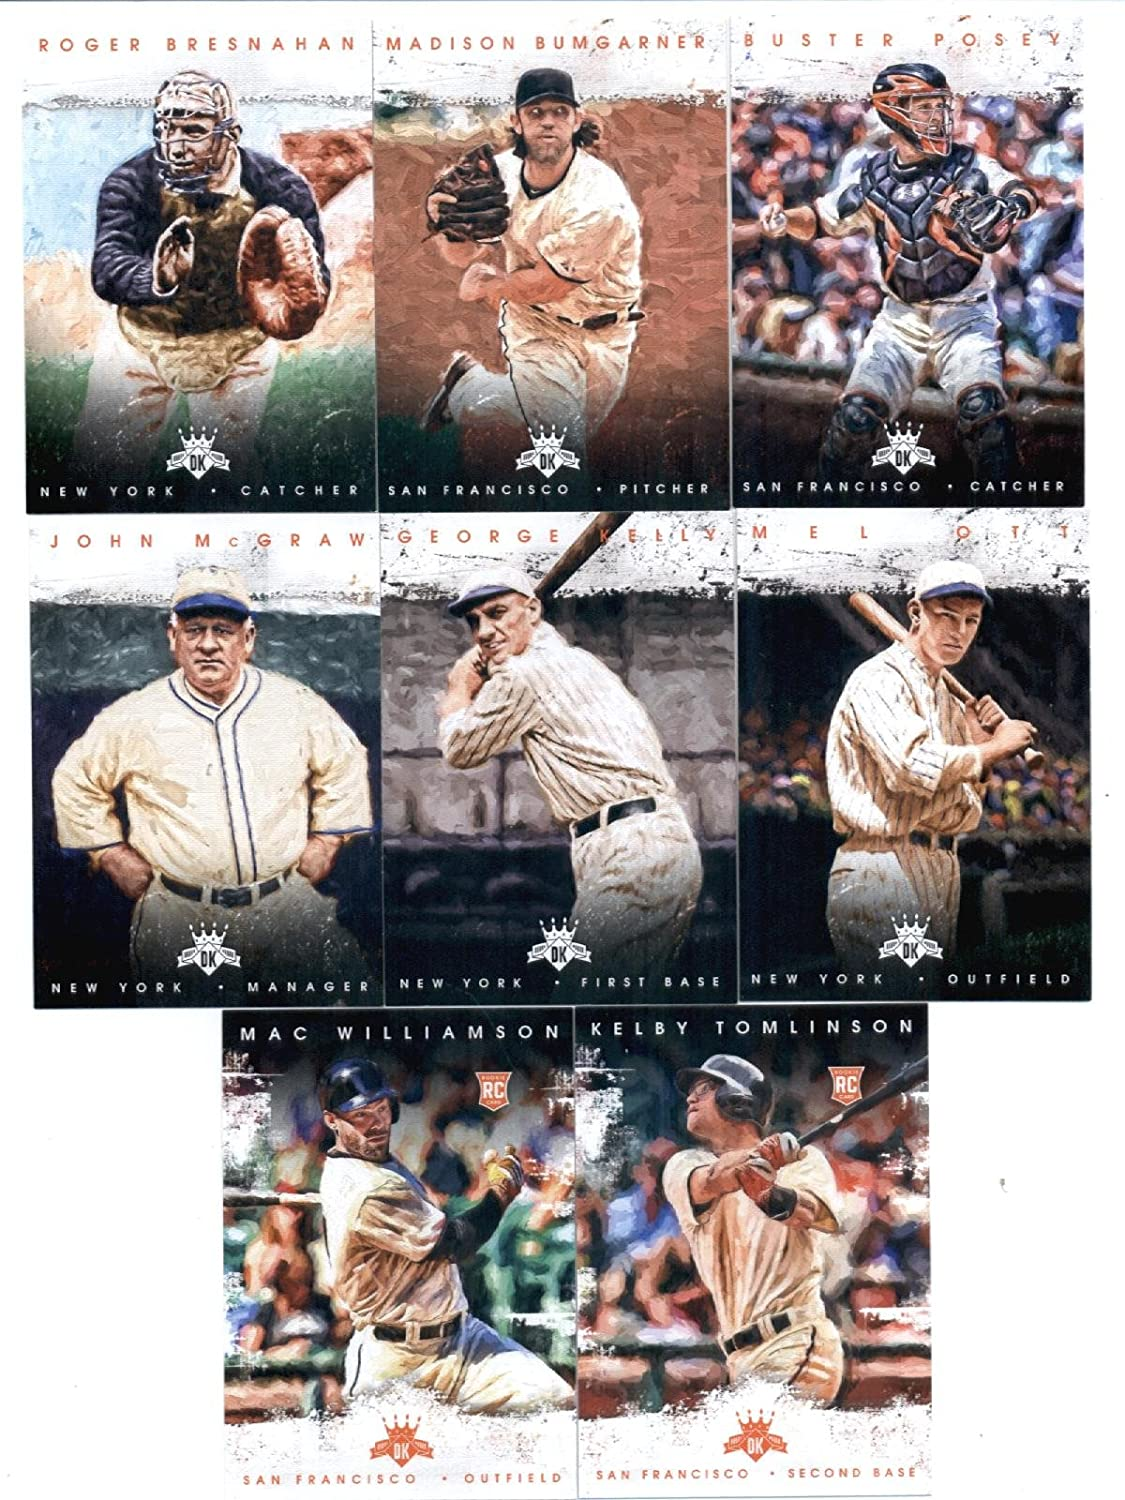 2016 Diamond Kings San Francisco Giants Team Set of 8 Cards: George Kelly(#5), Mel Ott(#15), John McGraw(#41), Roger Bresnahan(#44), Buster Posey(#60), Madison Bumgarner(#86), Mac Williamson(#170), Kelby Tomlinson(#183) in Protective Snap Case